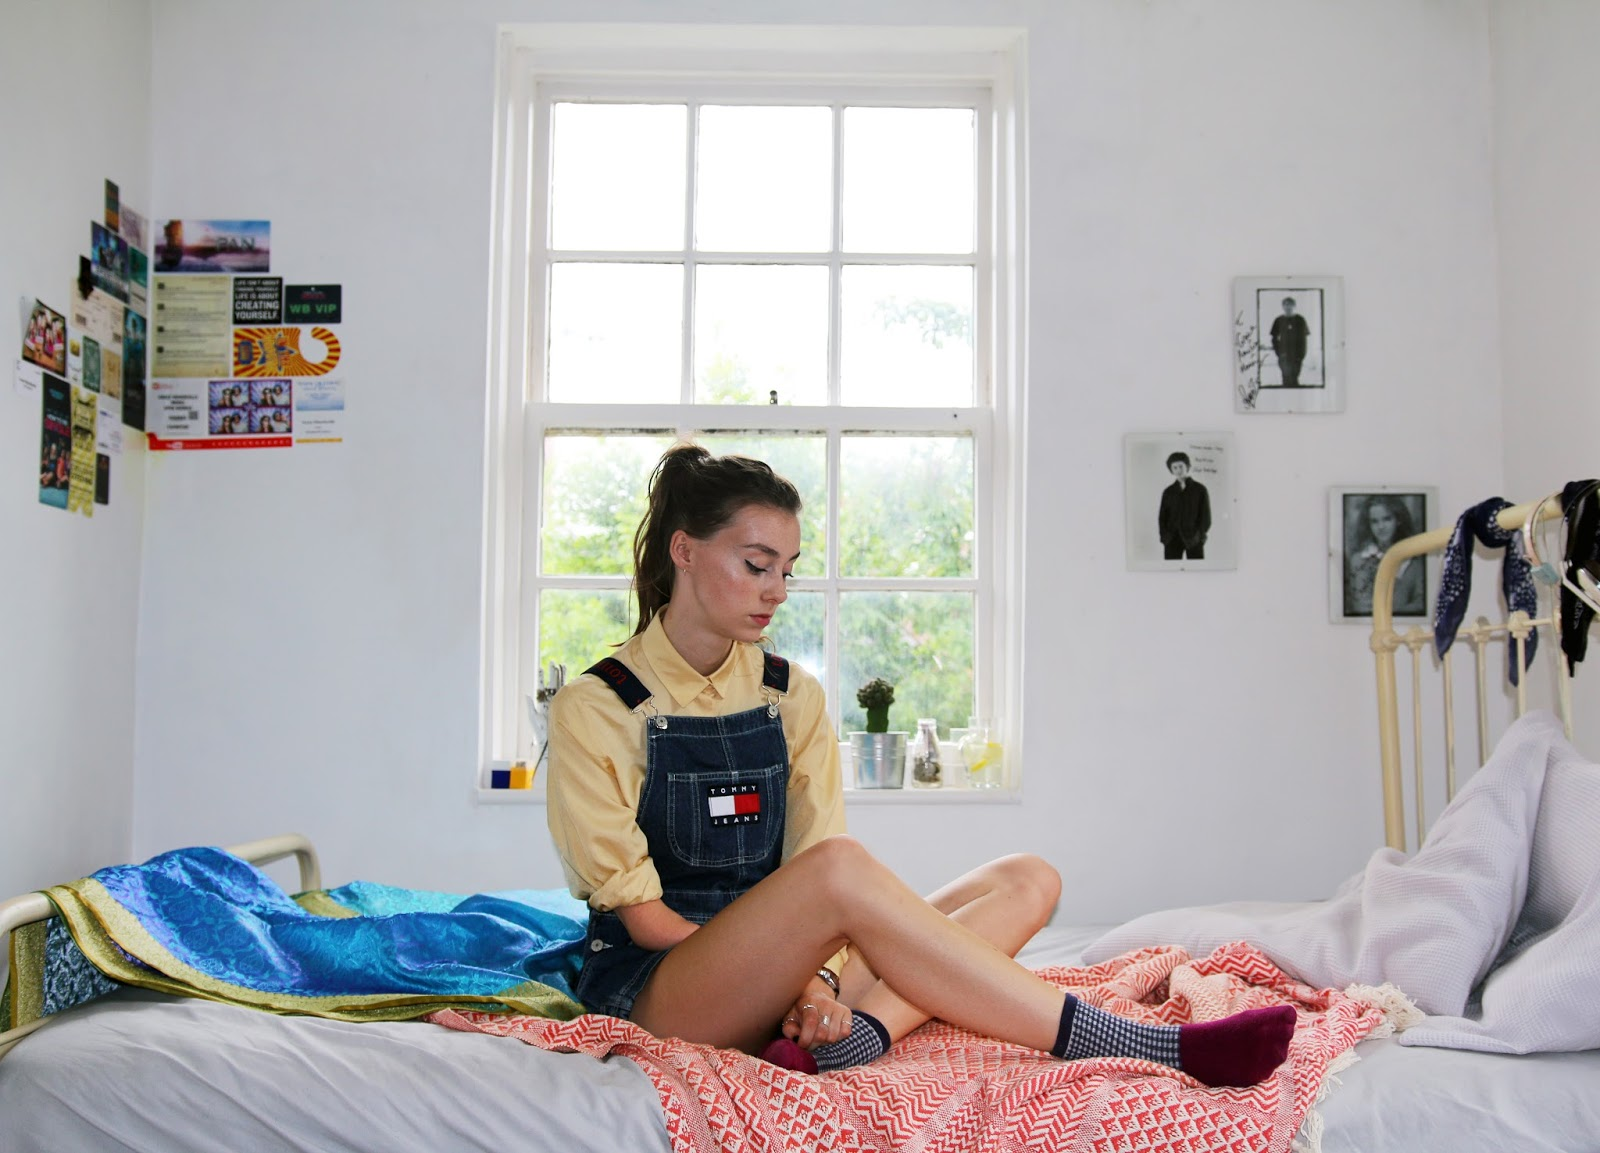 fashion blogger, british, ootd, grace mandeville, mandeville sisters, tommy hilfiger dungarees, overalls, shorts, tommy, hilfiger, urban outfitters, urban outfitters exclusive,